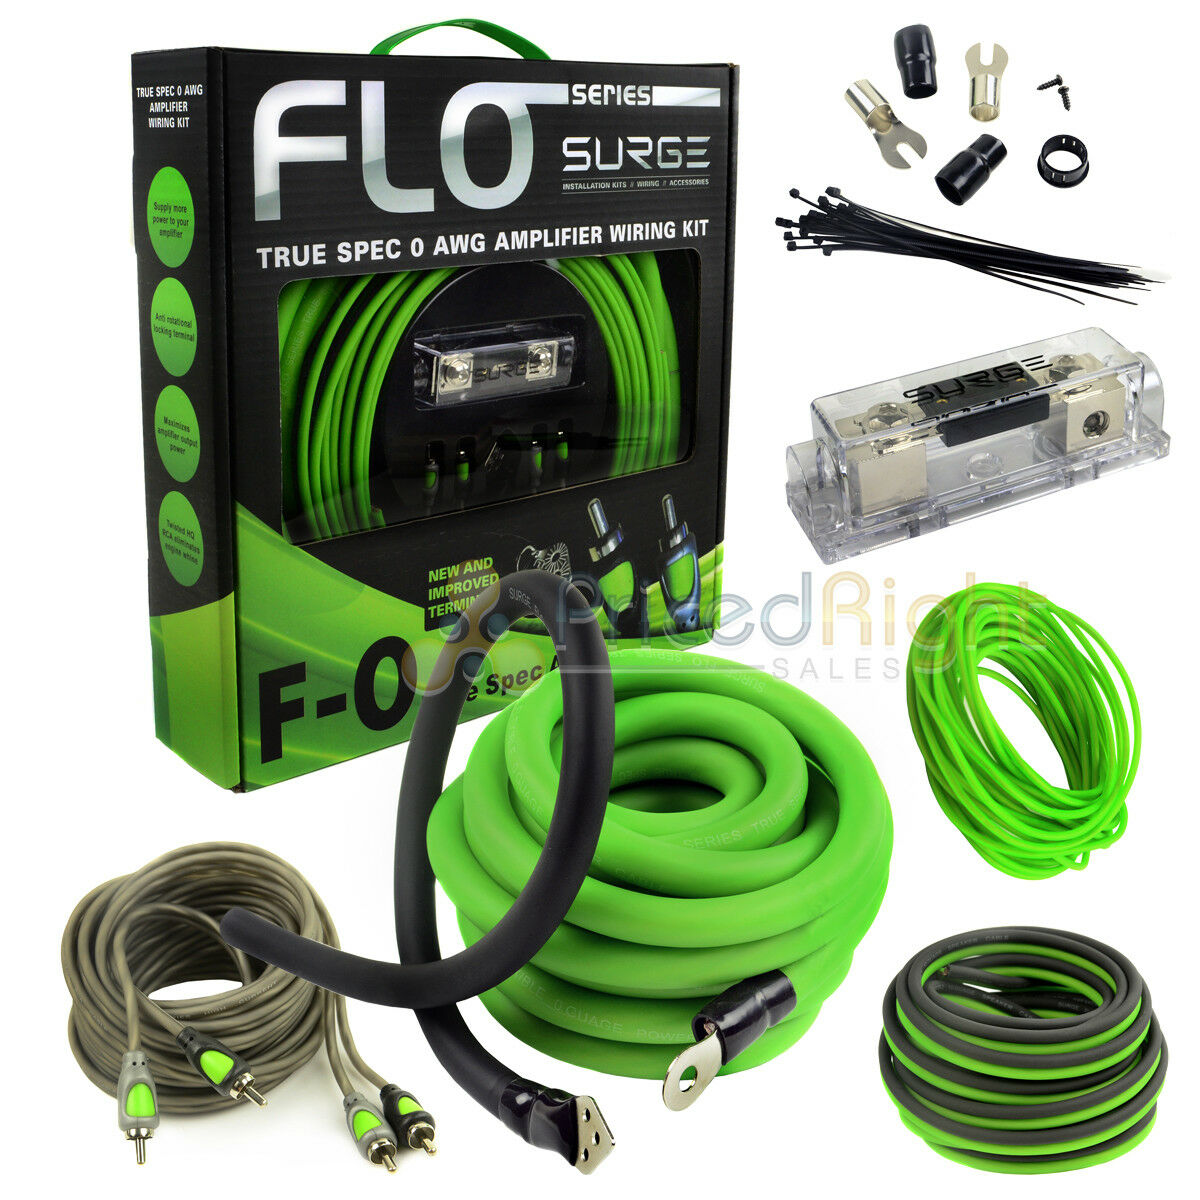 True 0 Gauge Amp Kit Awg Green Amplifier Install Wiring Accessories 1 Of 9free Shipping